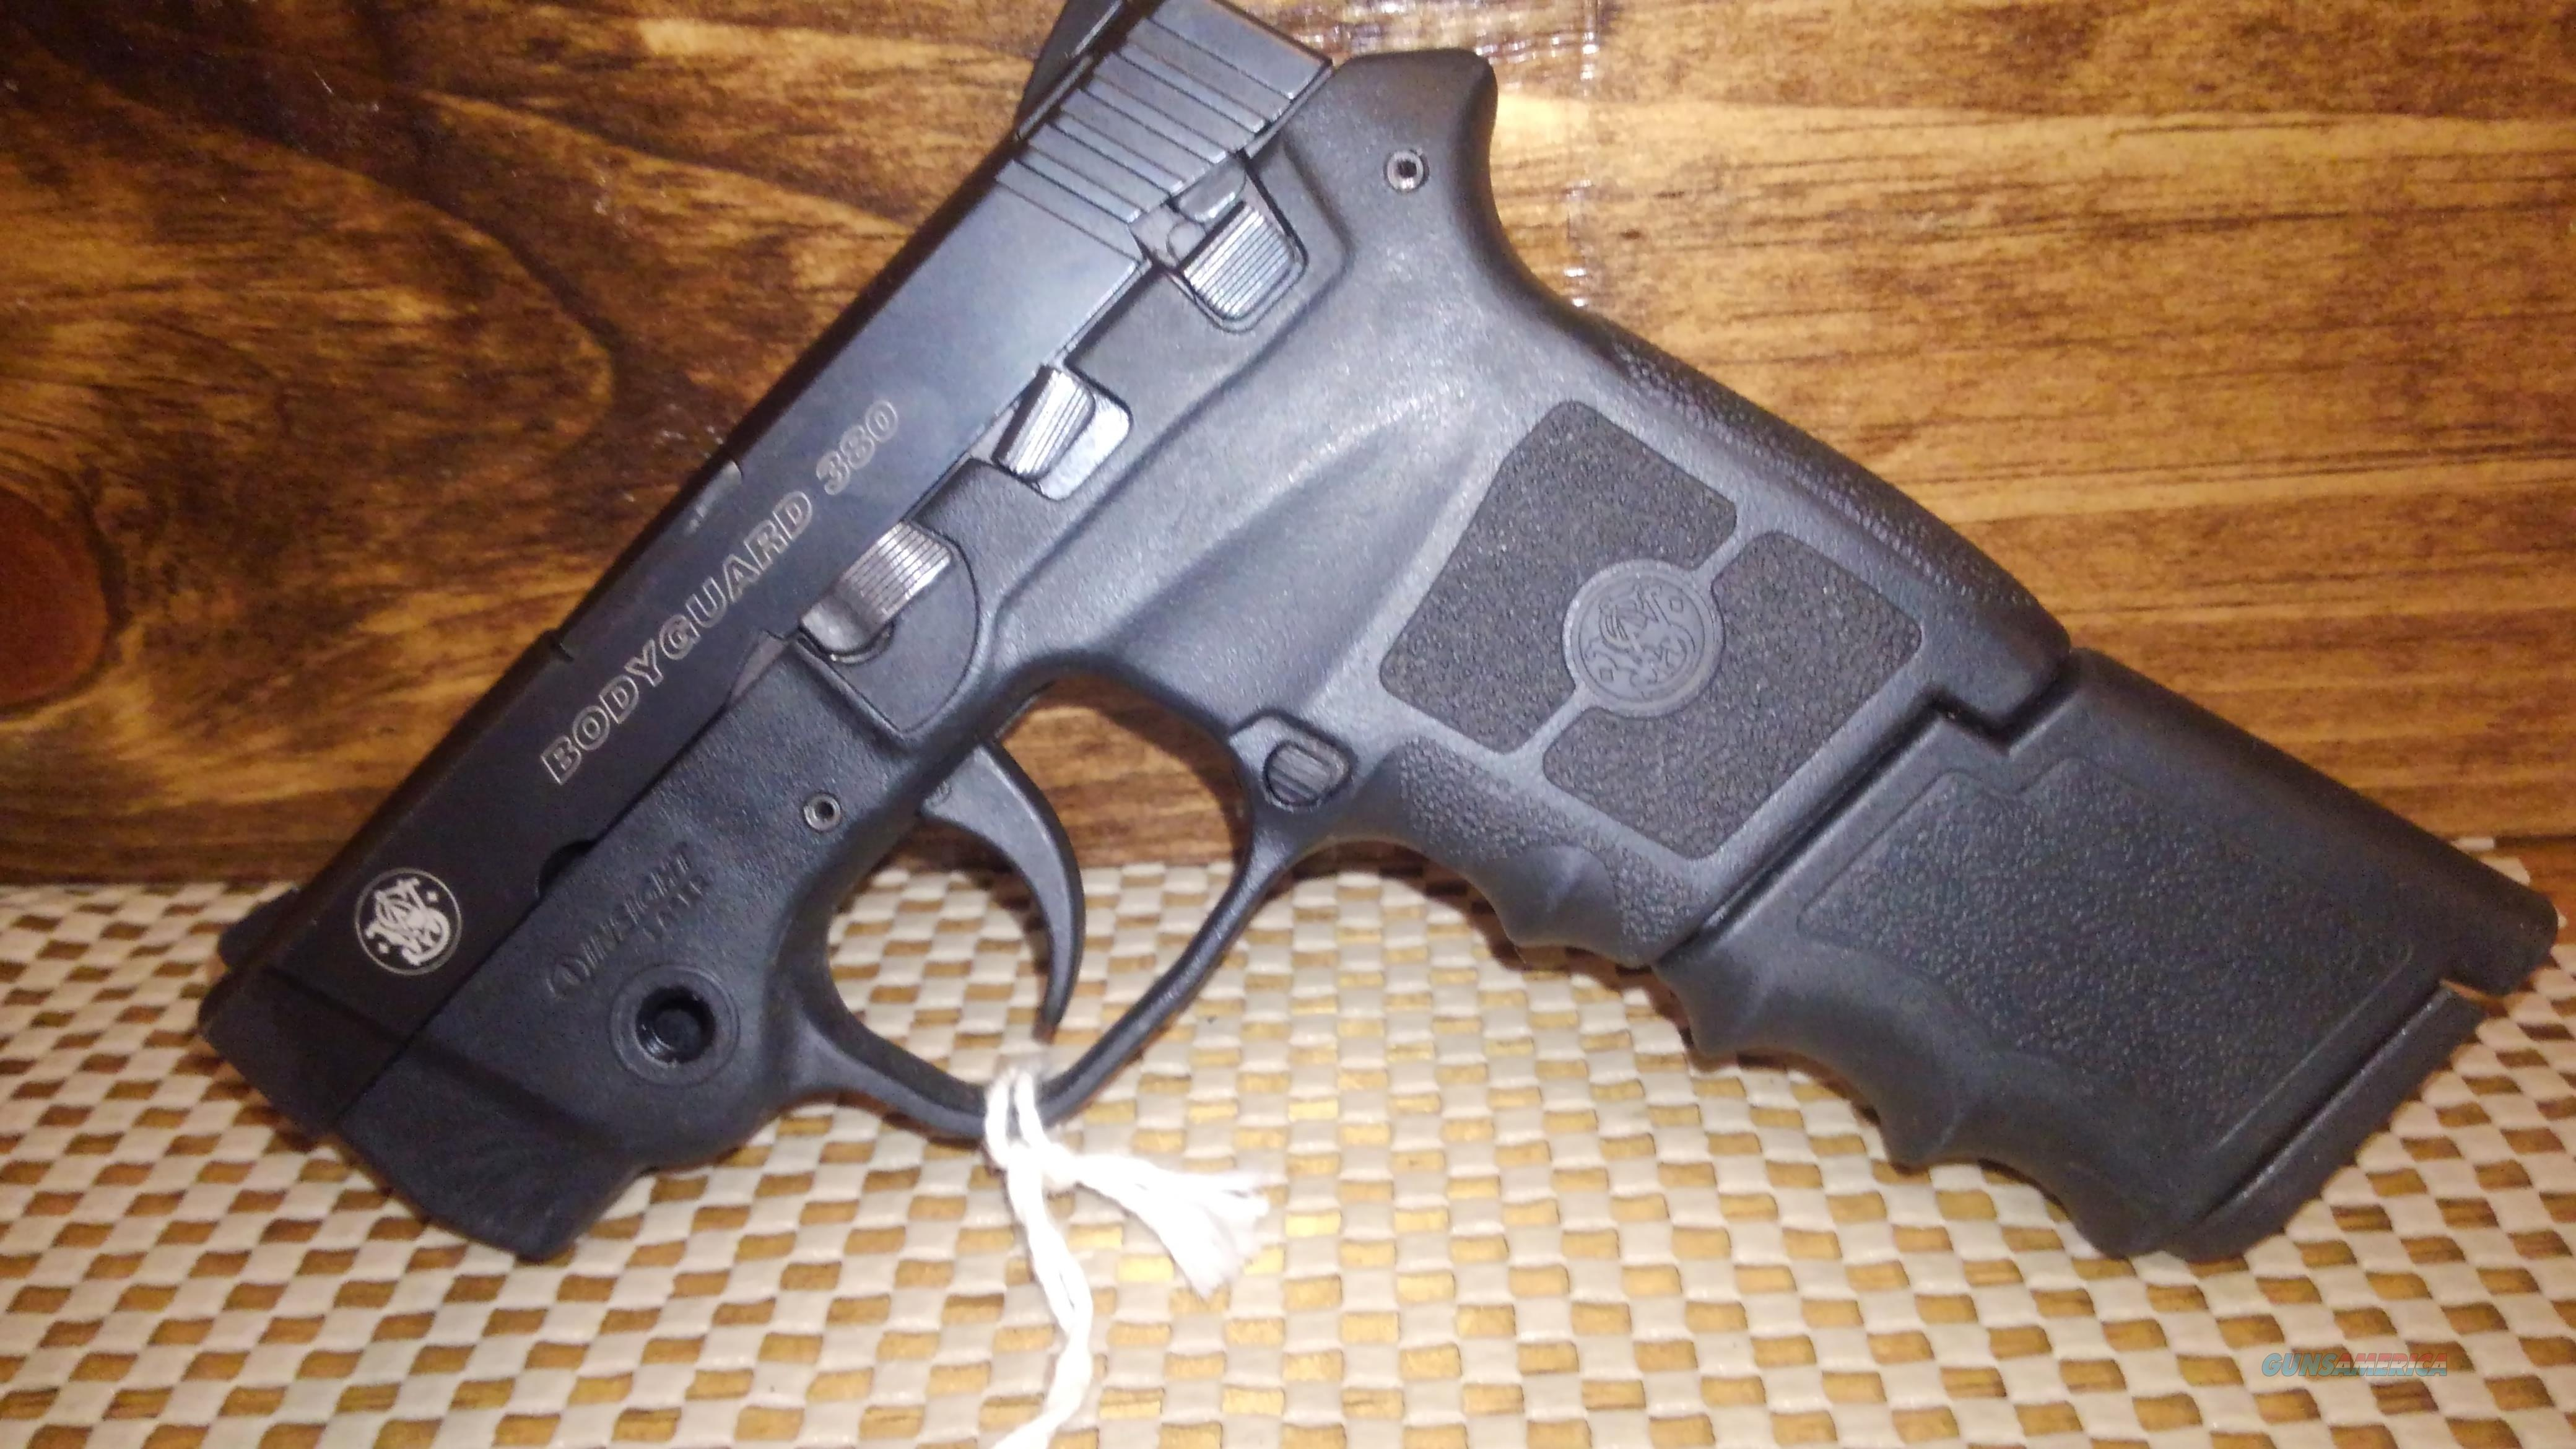 SMITH&WESSON BODYGUARD BG380 WITH LASER, FREE SHIPPING NO CC FEE  Guns > Pistols > Smith & Wesson Pistols - Autos > Polymer Frame